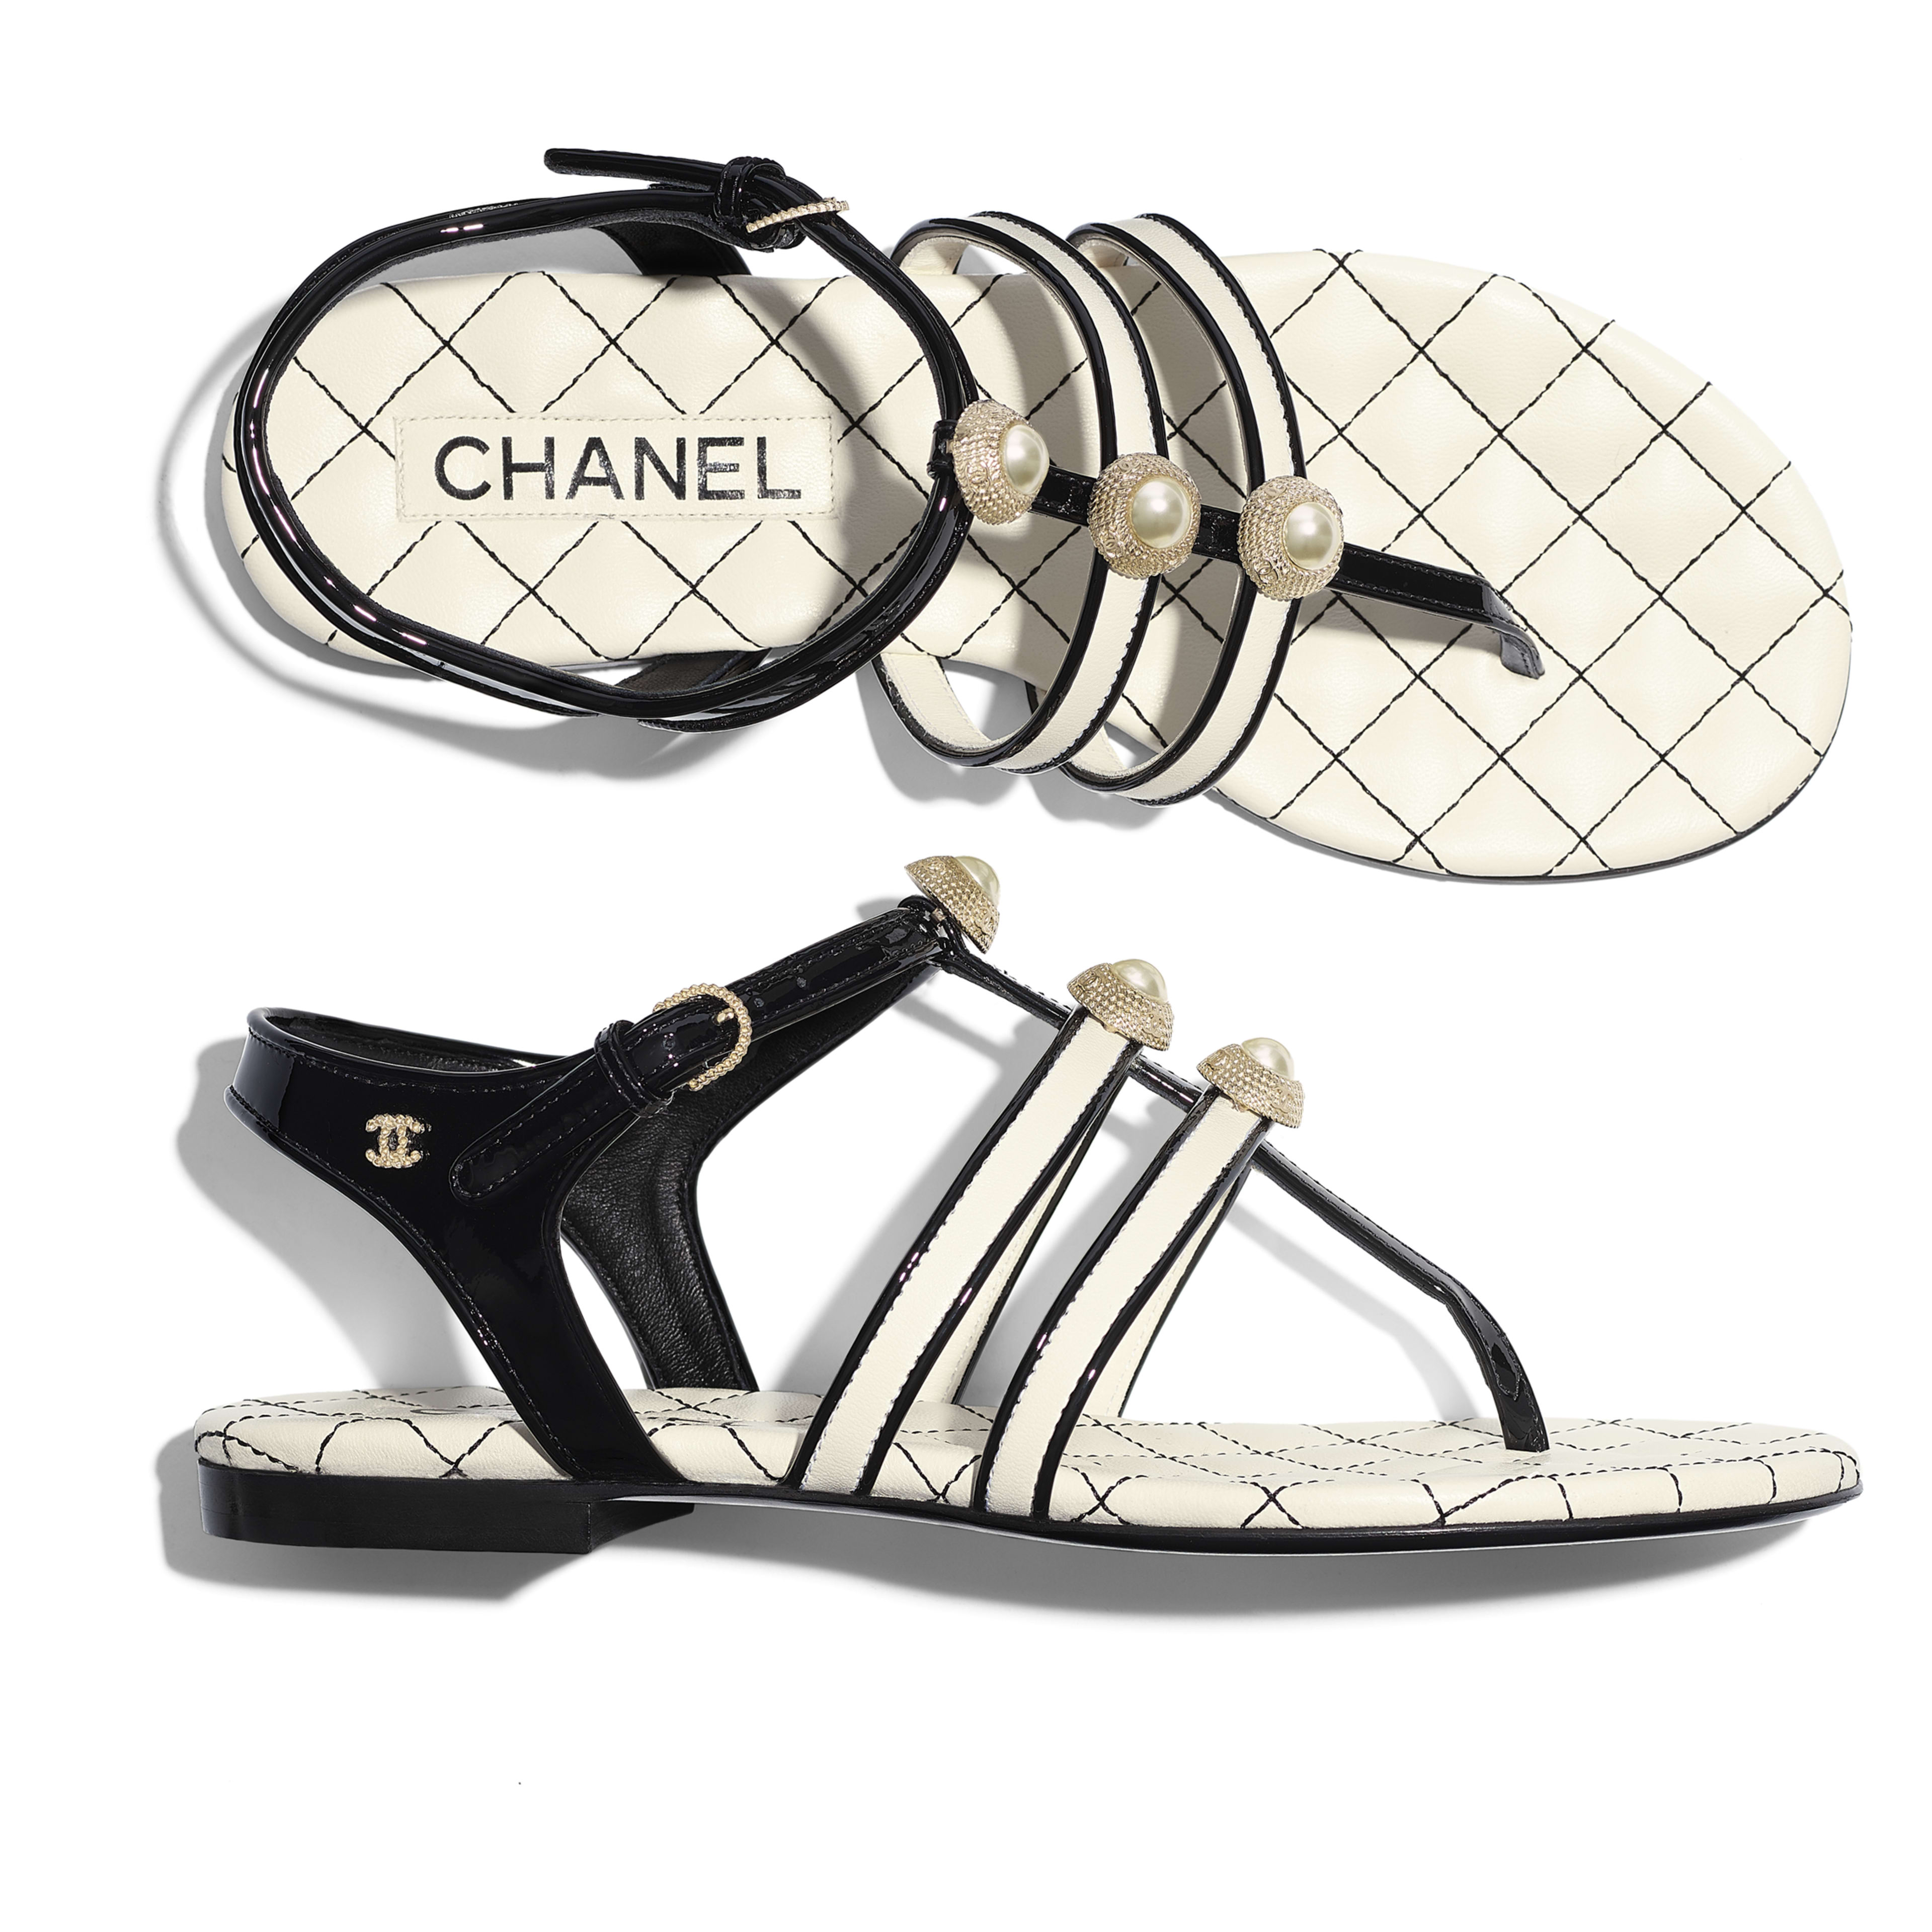 Sandals - Ivory & Black - Lambskin, Patent Calfskin & Fantasy Pearls - Extra view - see full sized version